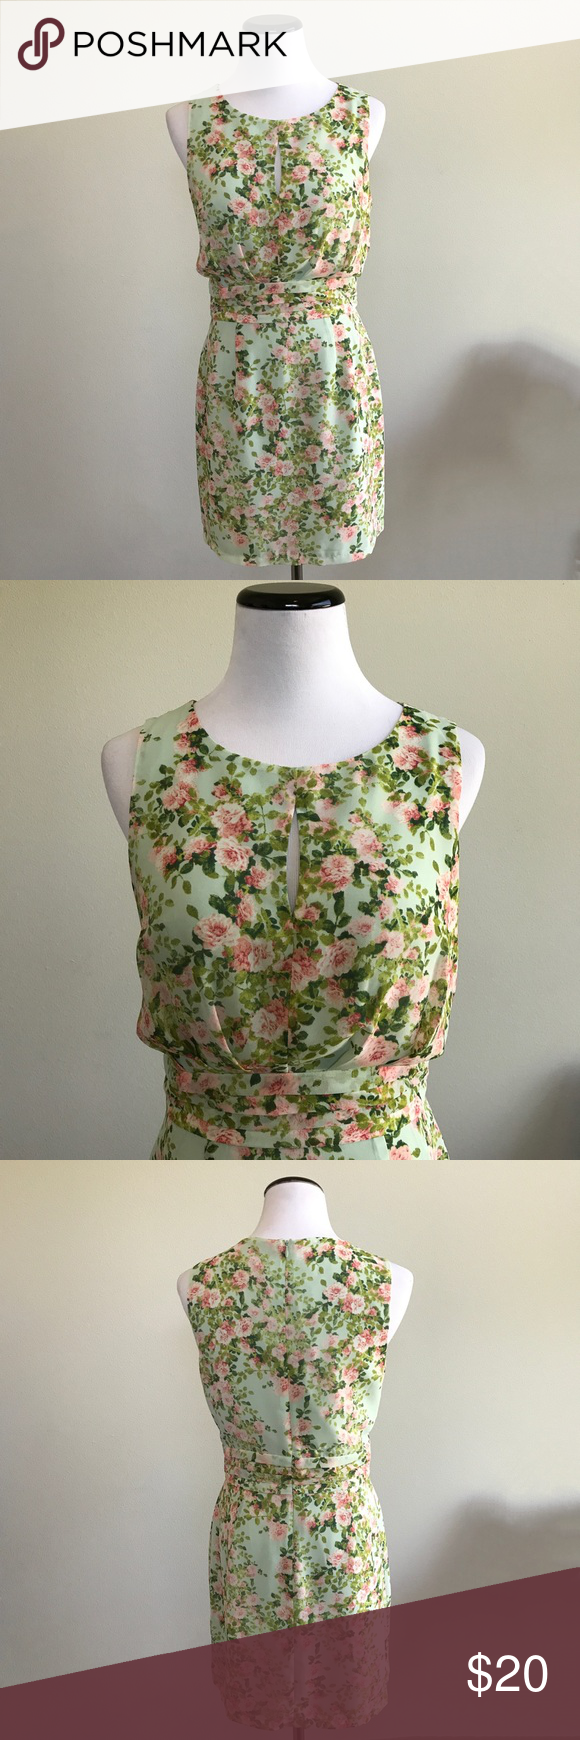 Mint green floral dress Green floral dress from Forever 21. Worn once to a wedding. Small keyhole front. All over floral print. Size small. No PayPal, holds or trades. Bundle to save. 💸 Open to offers! Forever 21 Dresses